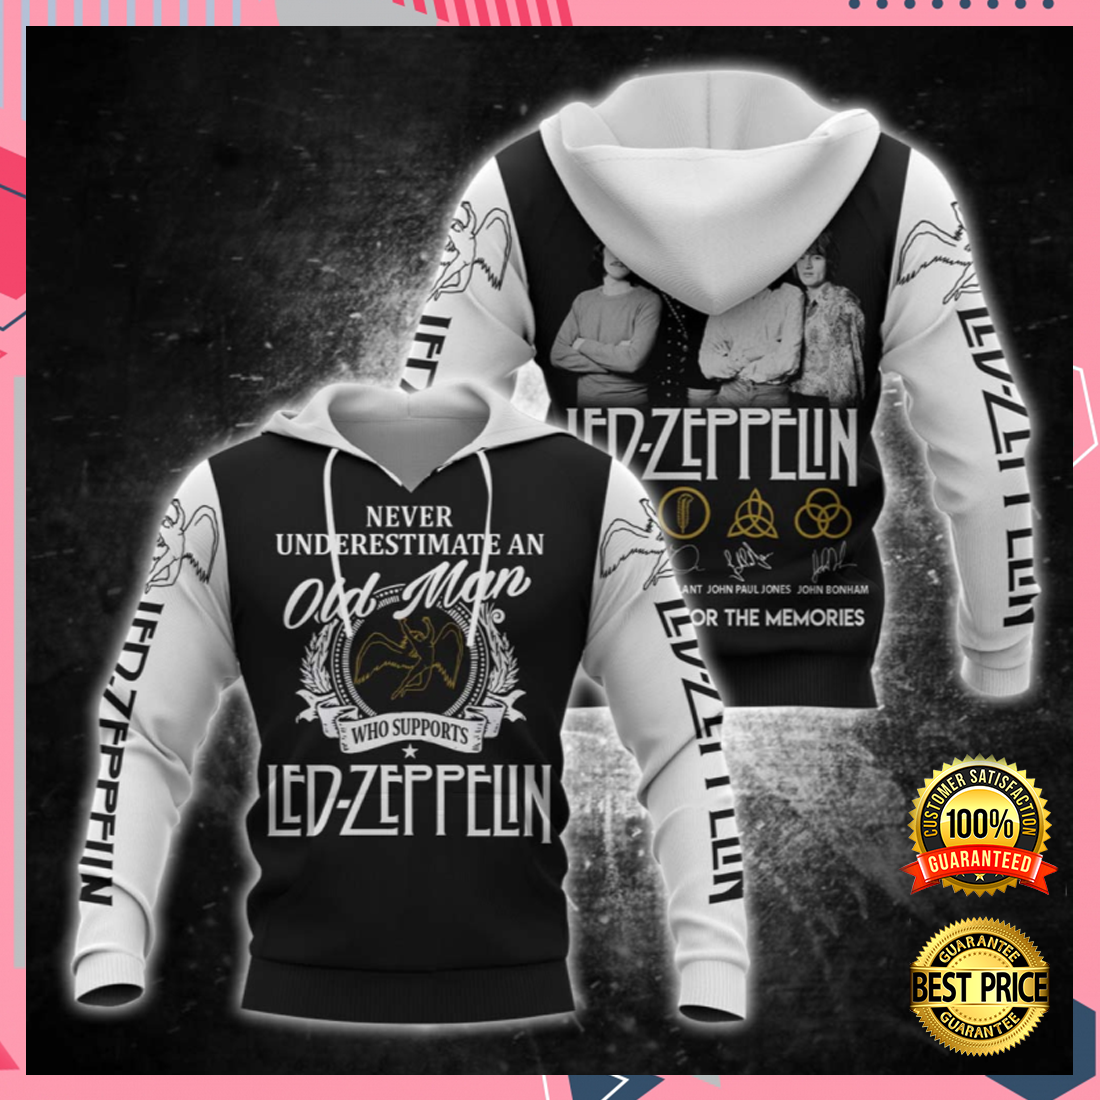 [DISCOUNT] NEVER UNDERESTIMATE AN OLD MAN WHO SUPPORTS LED ZEPPELIN ALL OVER PRINTED 3D HOODIE